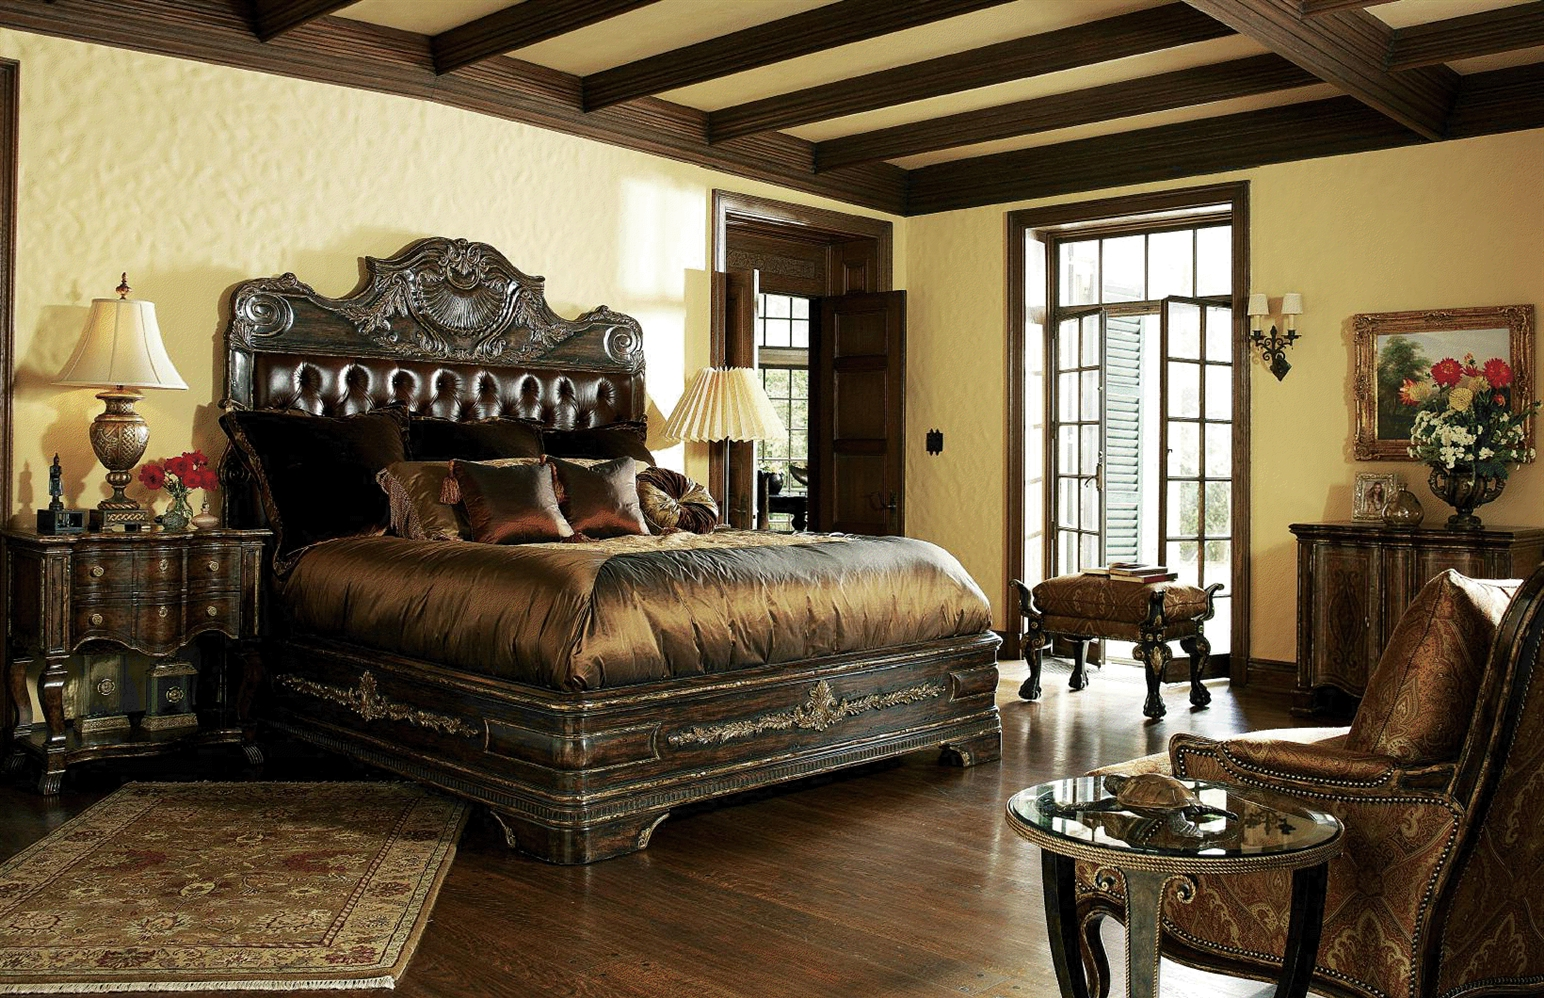 Queen and King Sized Beds 1 High end master bedroom set carvings and tufted  leather headboard. 1 High end master bedroom set carvings and tufted leather headboard